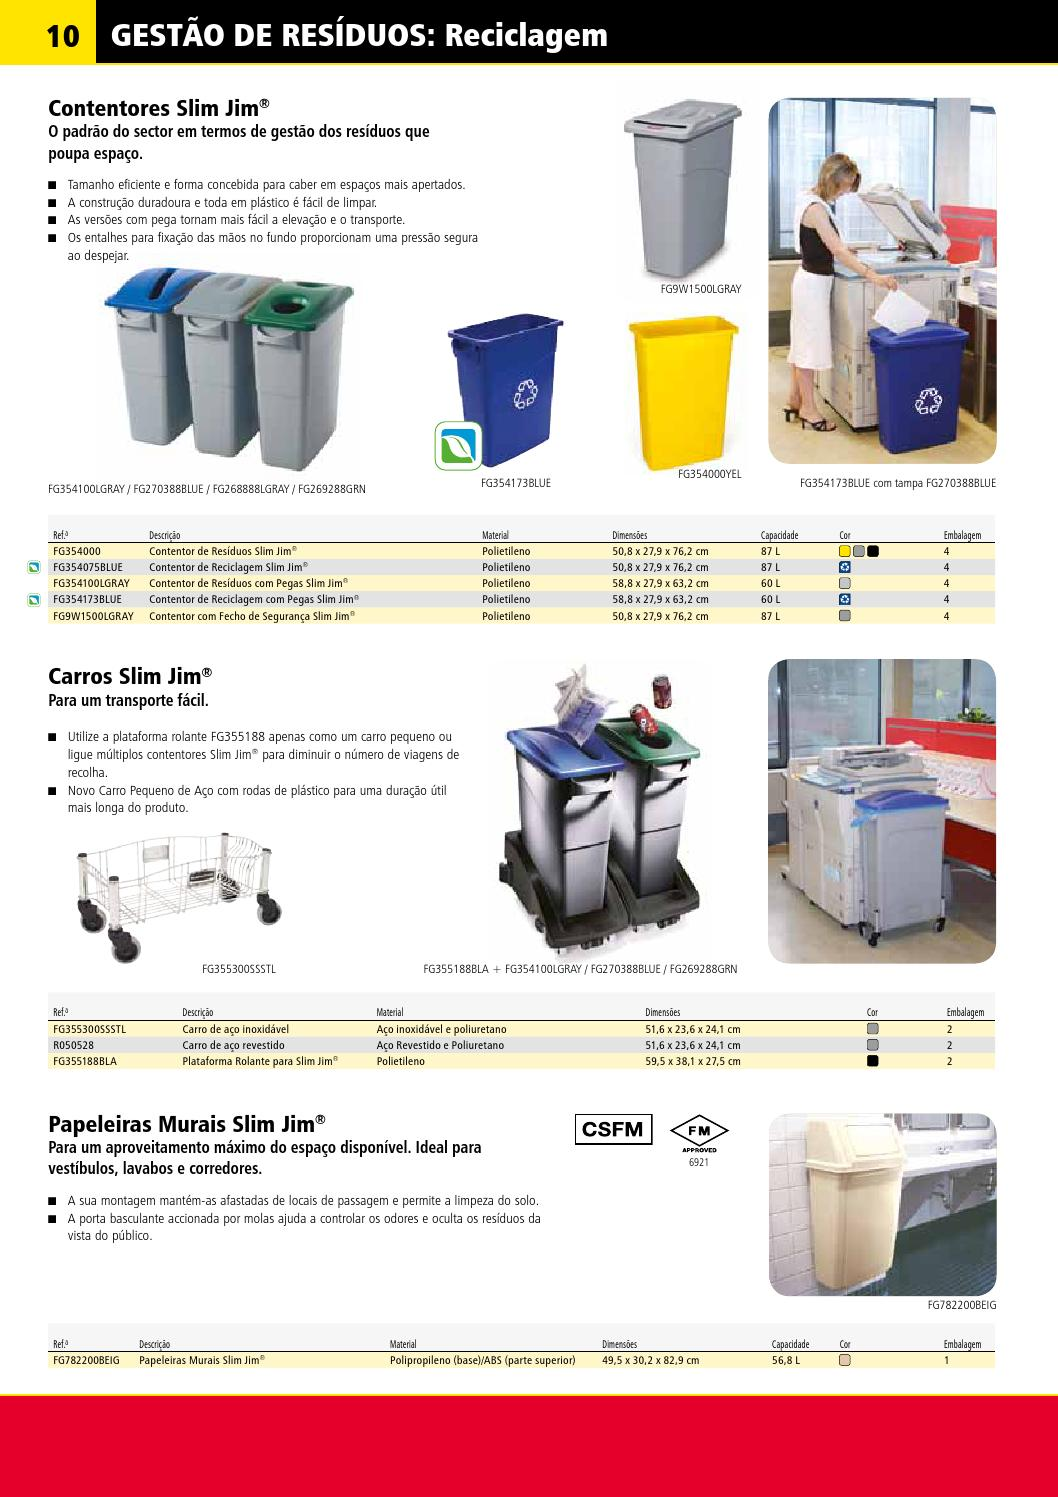 Rcp Catalogue 2013 Portuguese By Rubbermaid Issuu